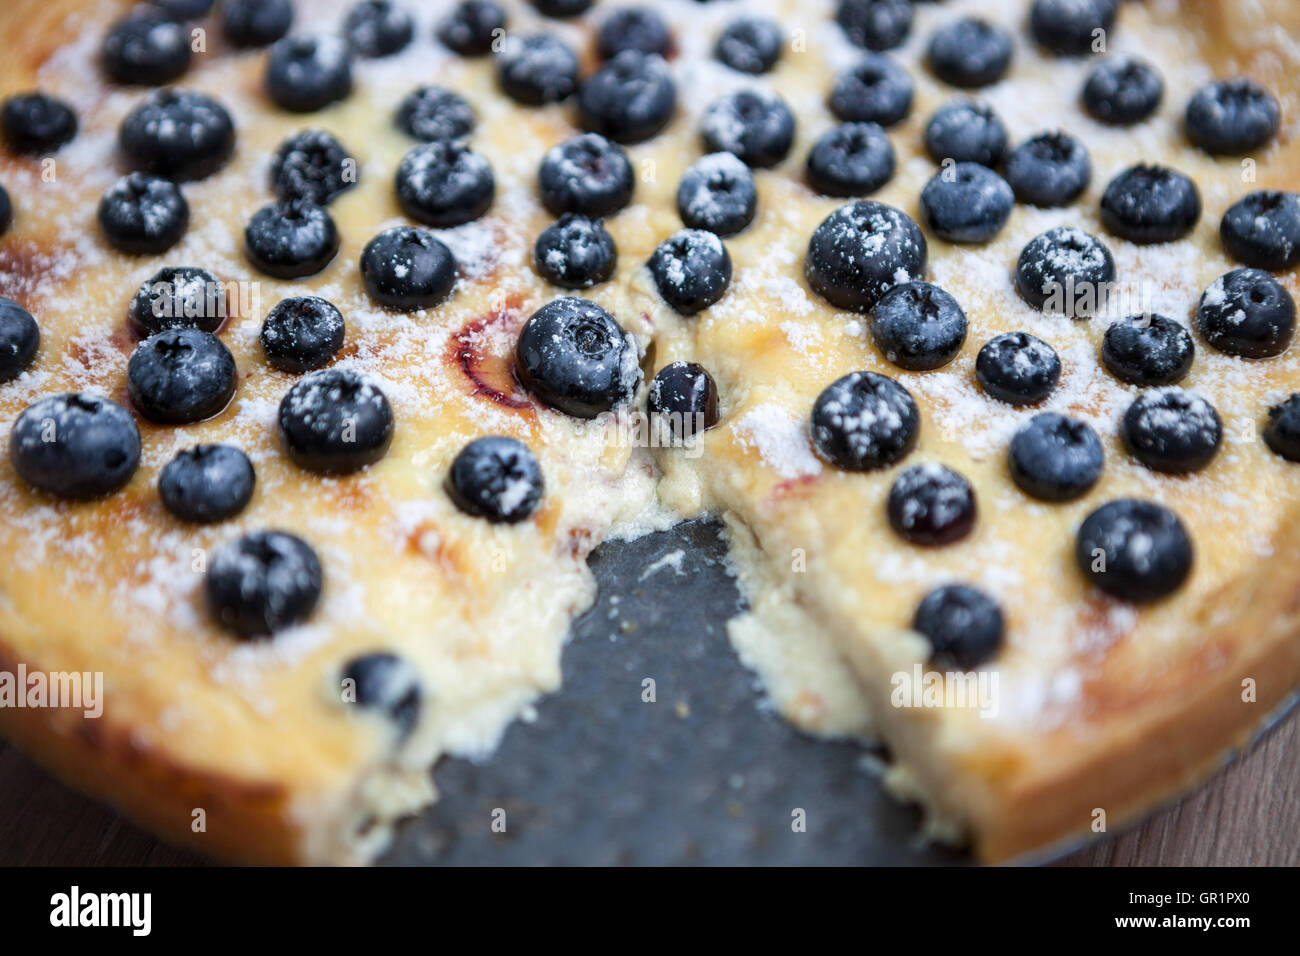 Cut blueberry pie on plate. Homebaked pastry, delicious dessert. Yummy organic food with lots of sugar, fresh berries - Stock Image